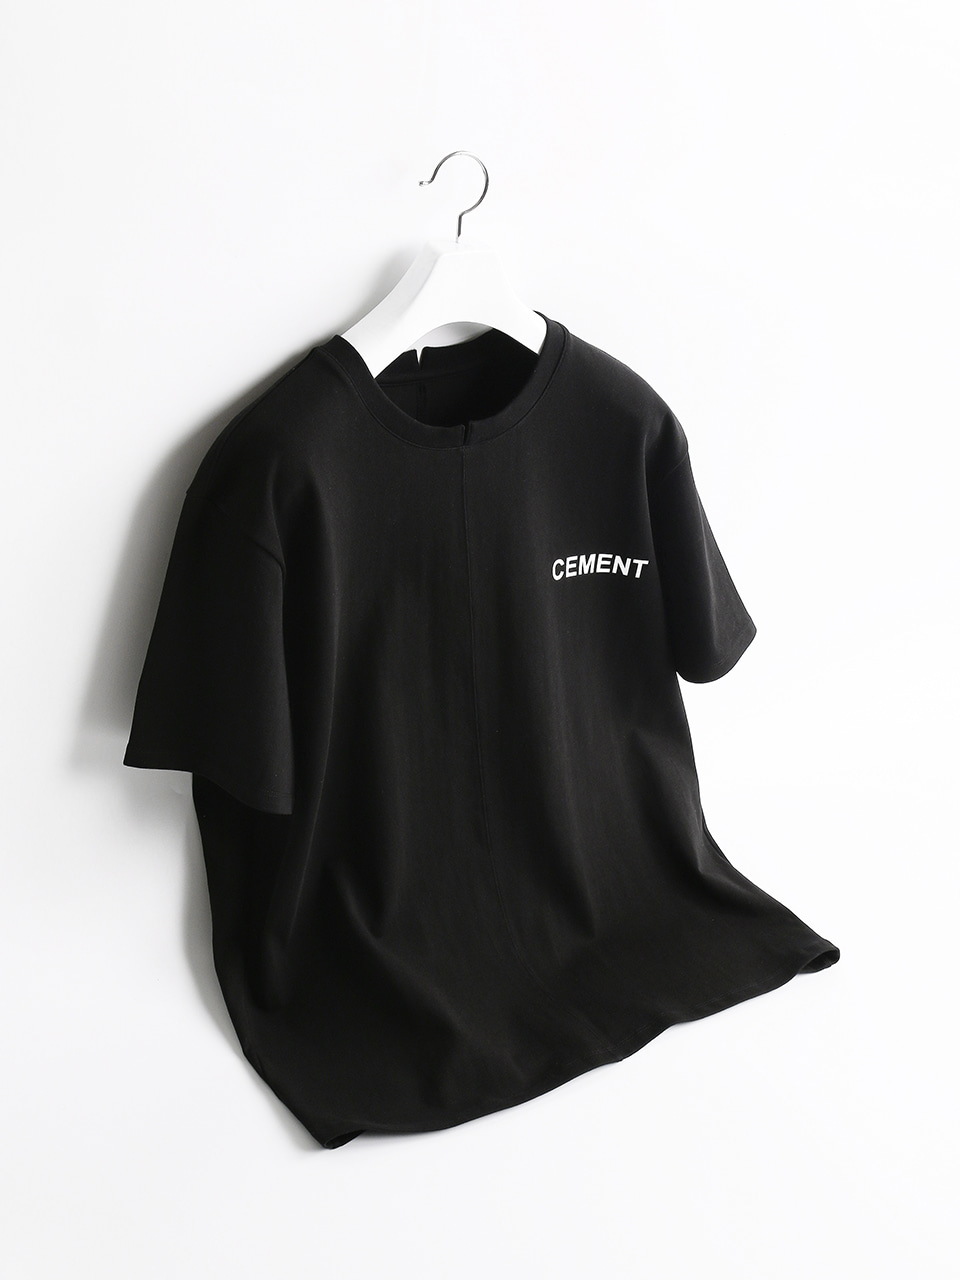 CEMENT PRINTED T-SHIRTS / BLACKATE STUDIOS에이티이 스튜디오스